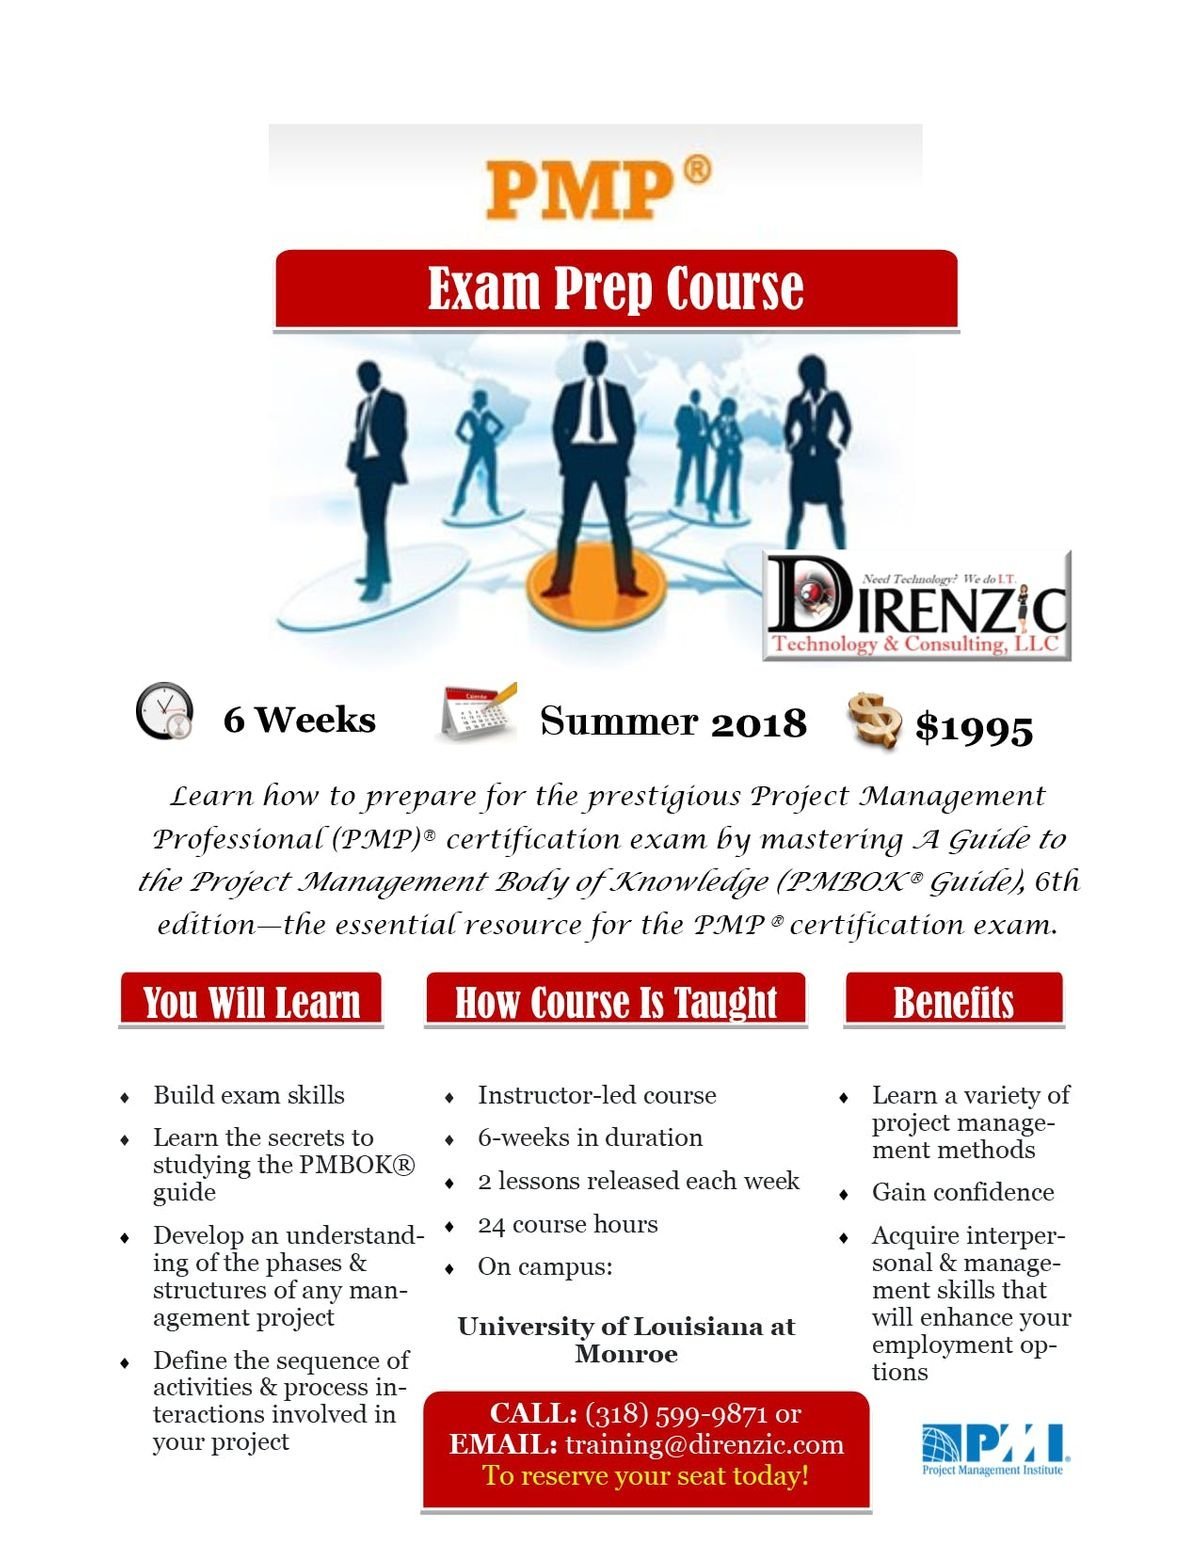 Project Management Professional Pmp Exam Prep 6 Week Course At